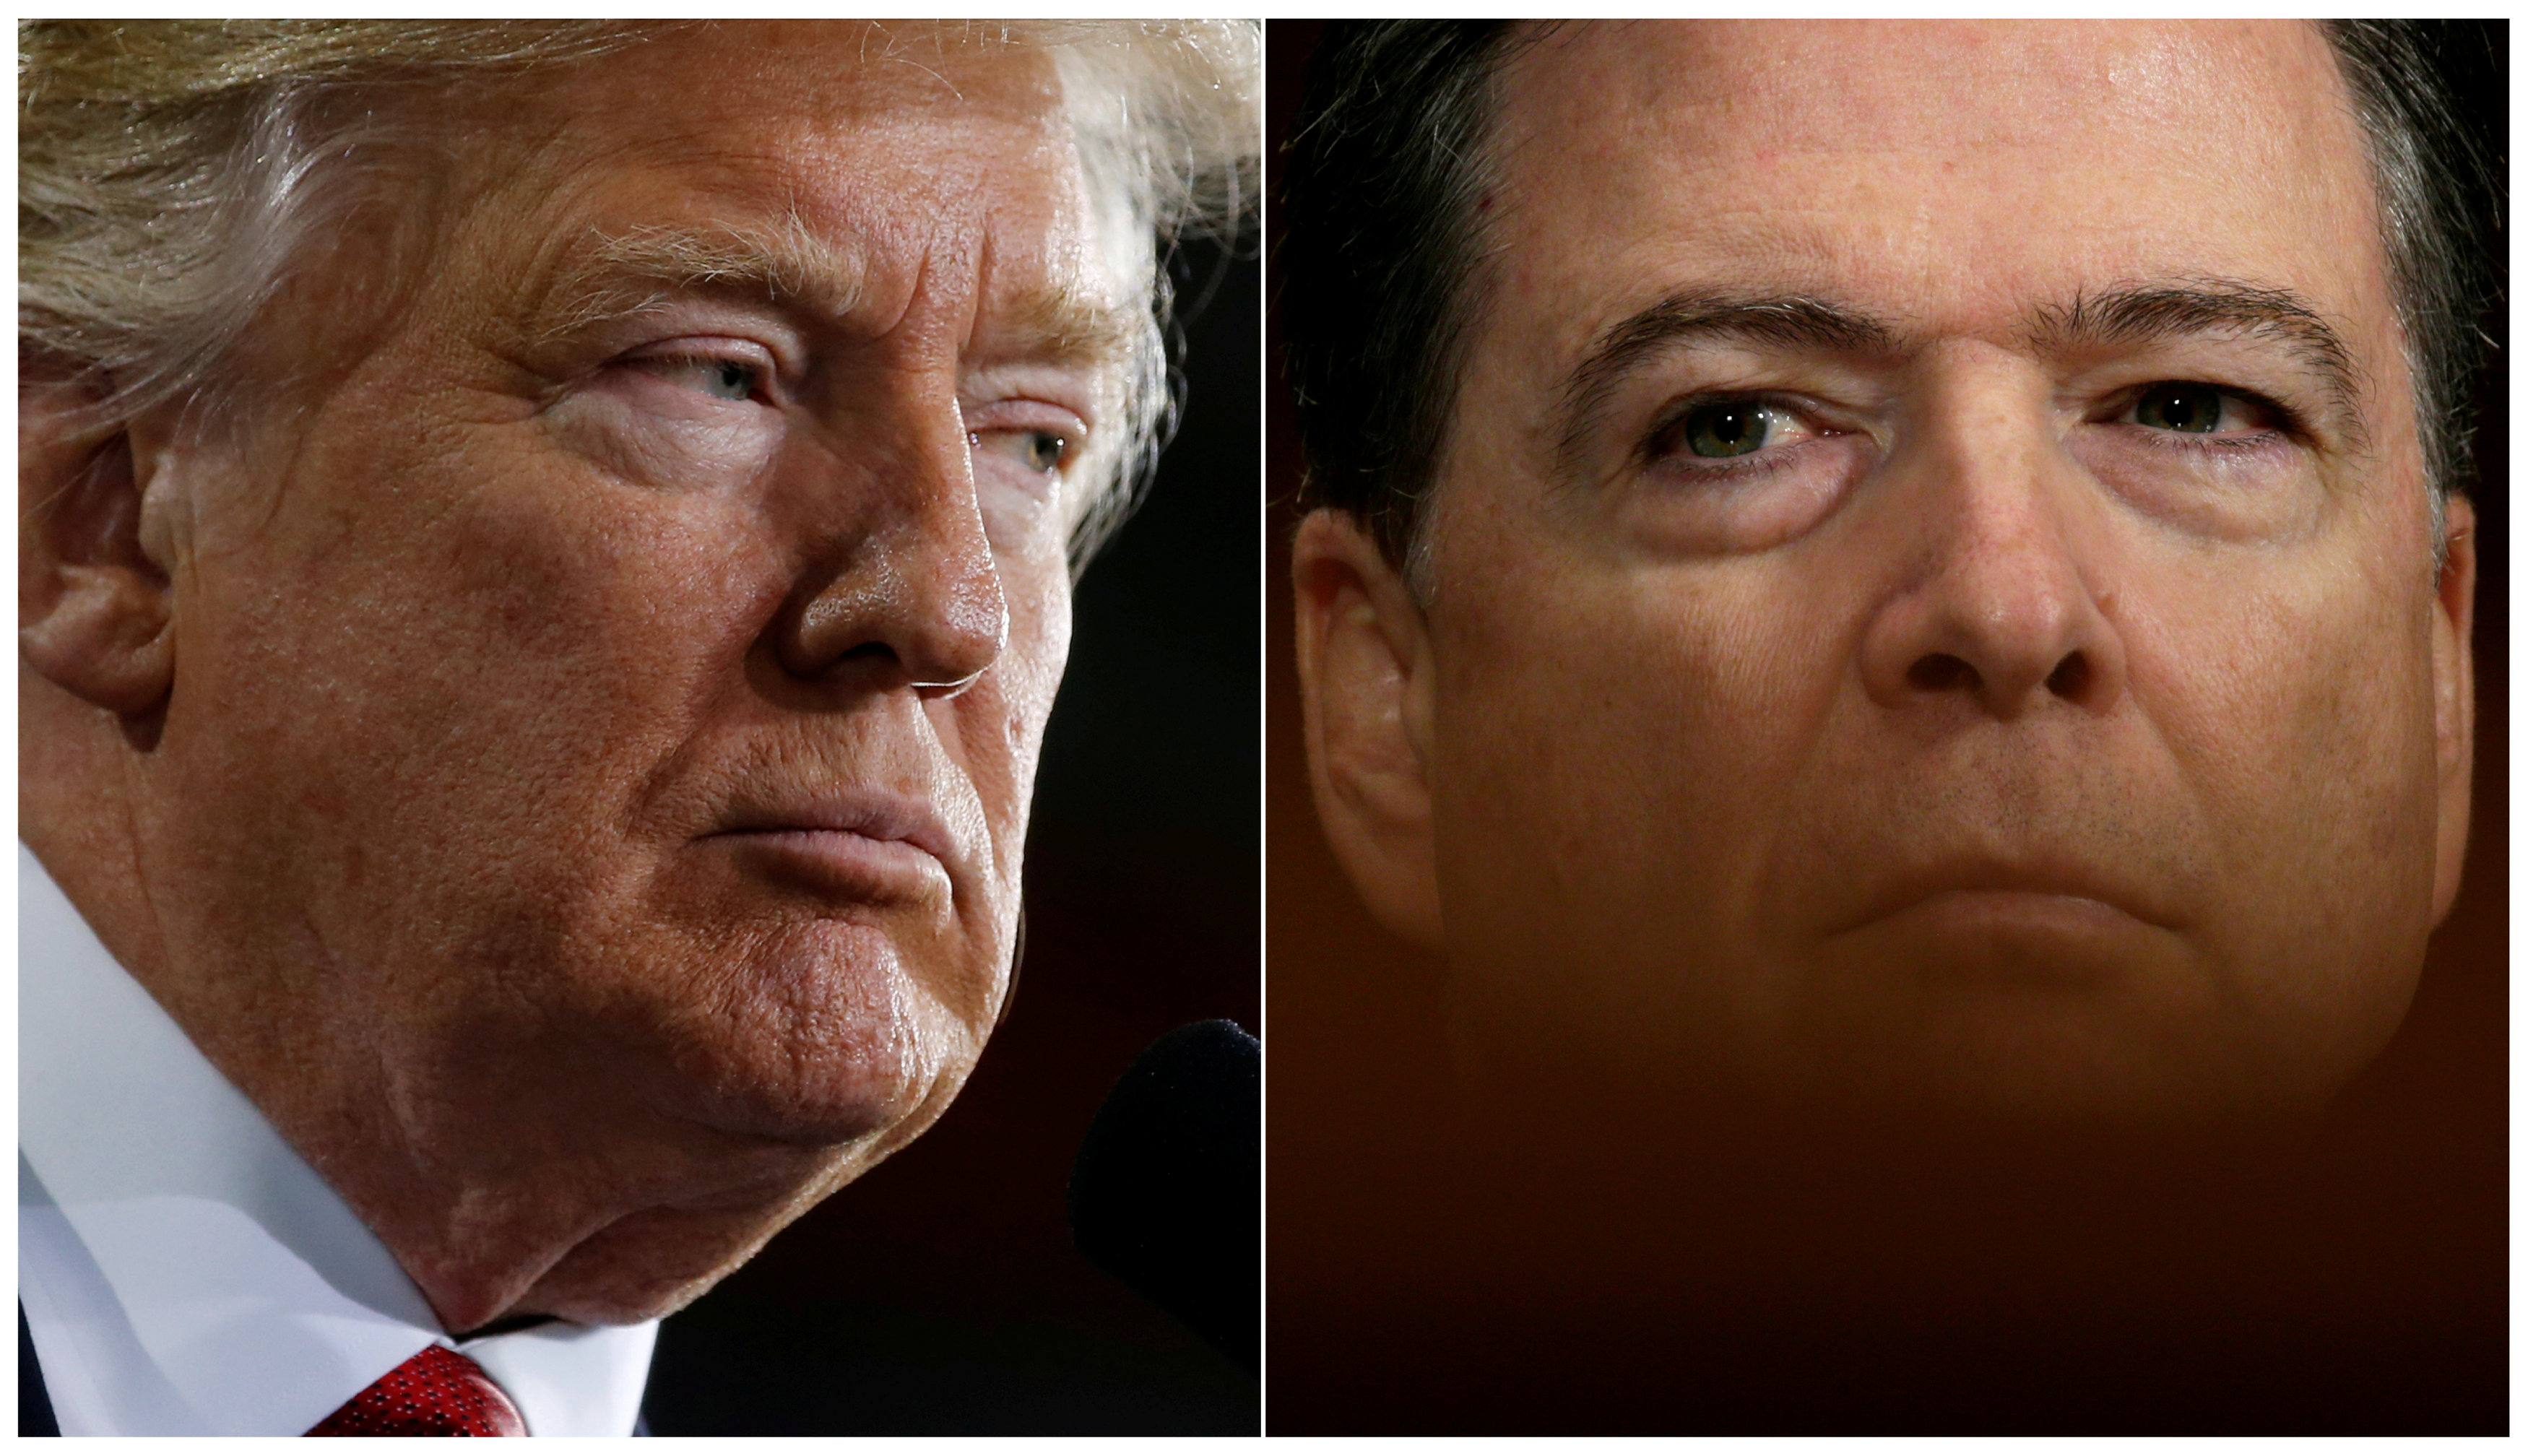 El presidente de Estados Unidos, Donald Trump (izq) y el exdirector del FBI, James Comey (der). FOTO: REUTERS